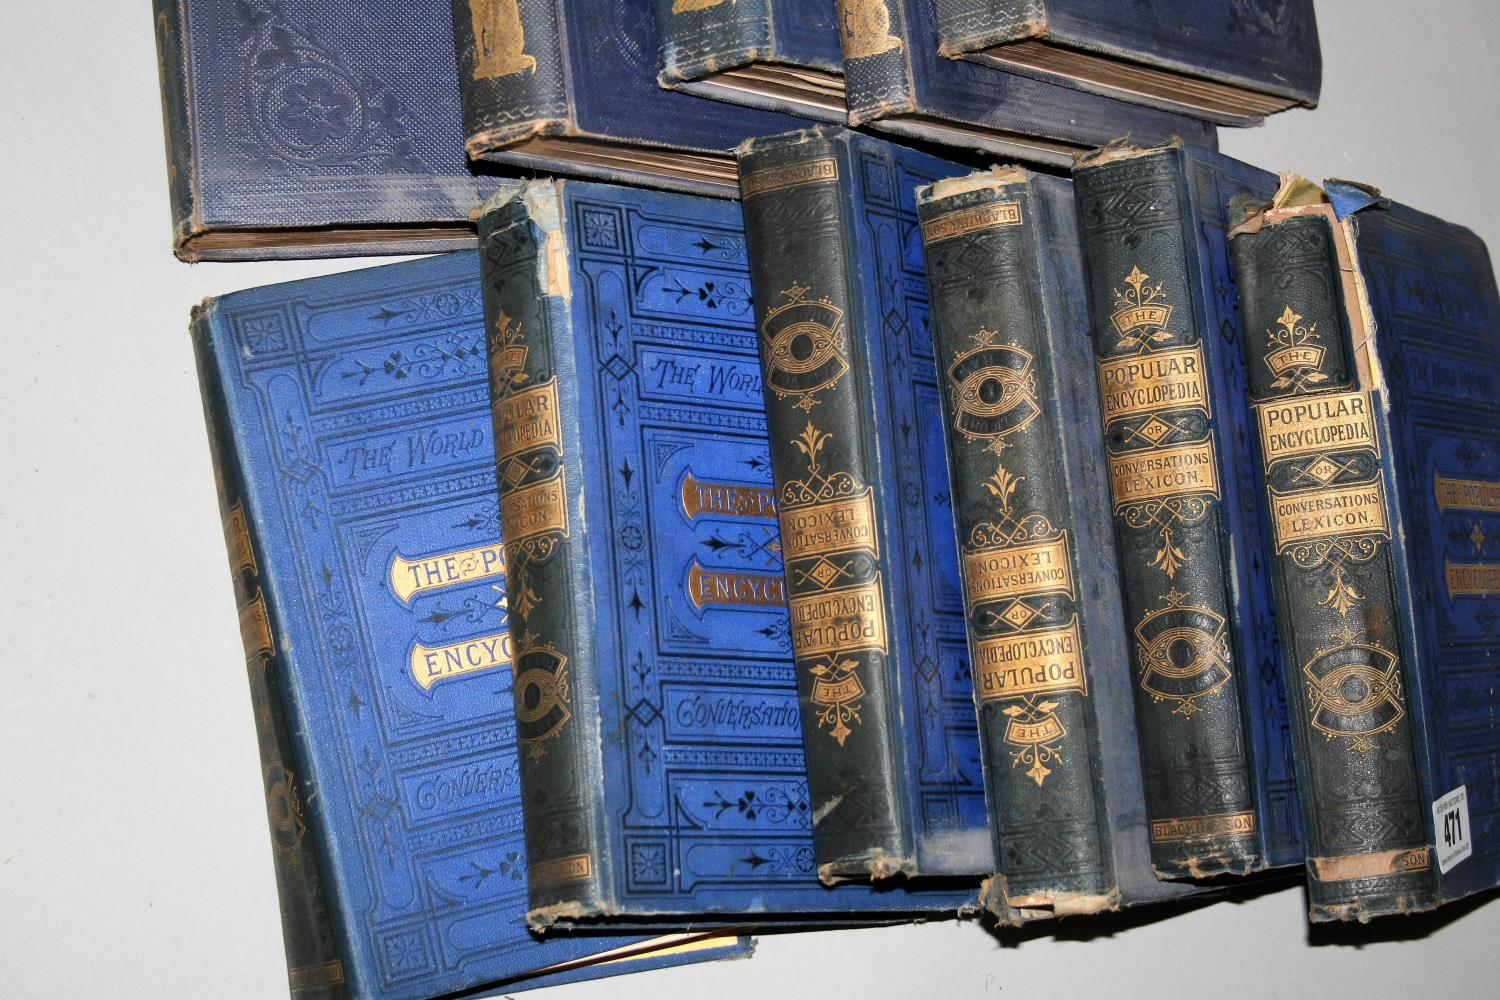 """Six volumes of """"The Popular Encyclopaedia"""" and five books """"Punch"""" 1841, 1842, 1843, 1845, 1846. - Image 2 of 4"""